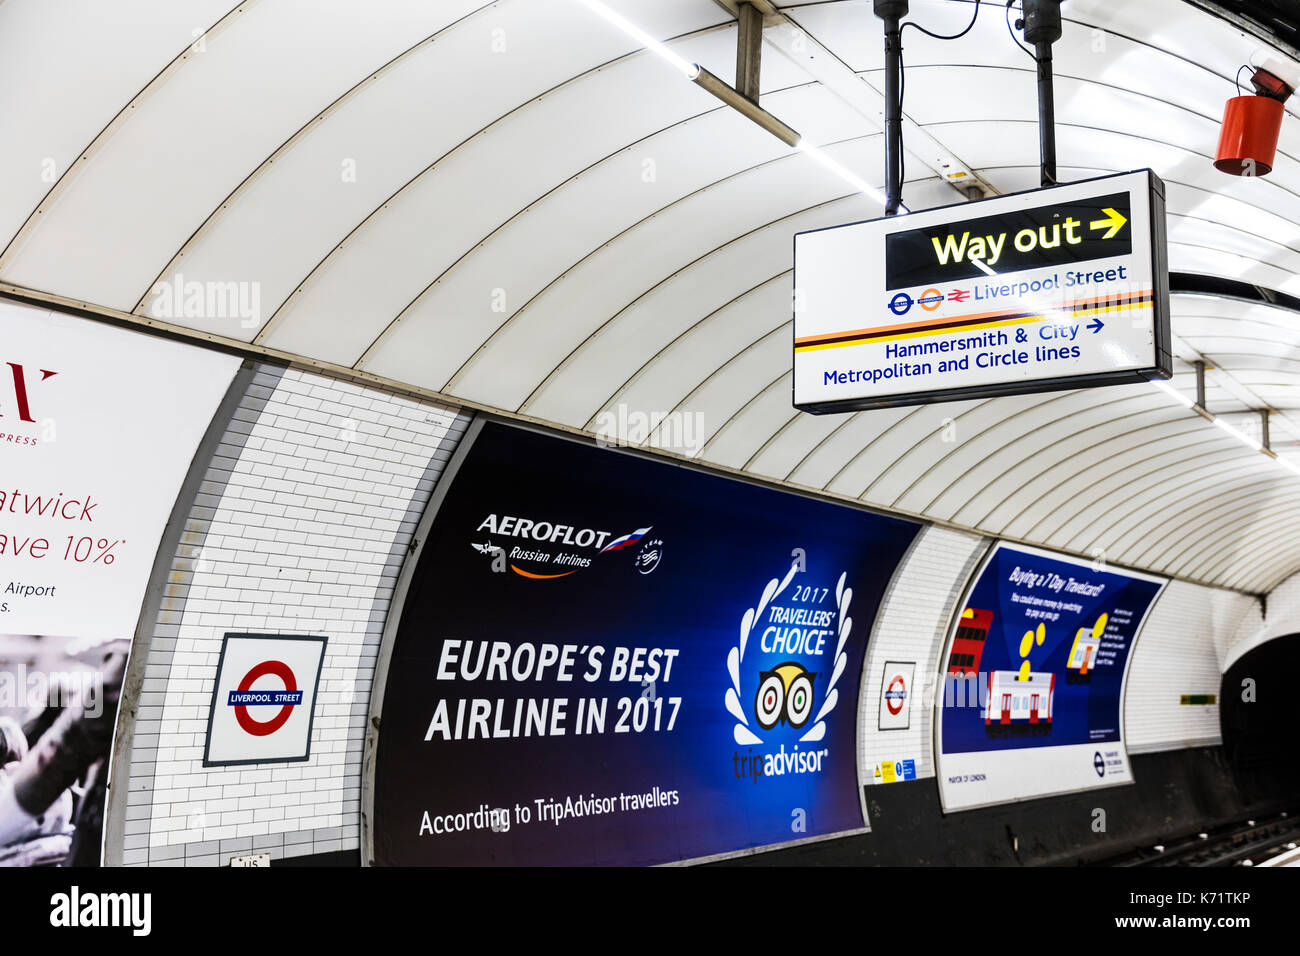 London Underground way out sign, London Underground way out, London Underground tube line, London Underground adverts, London Underground advertising, - Stock Image